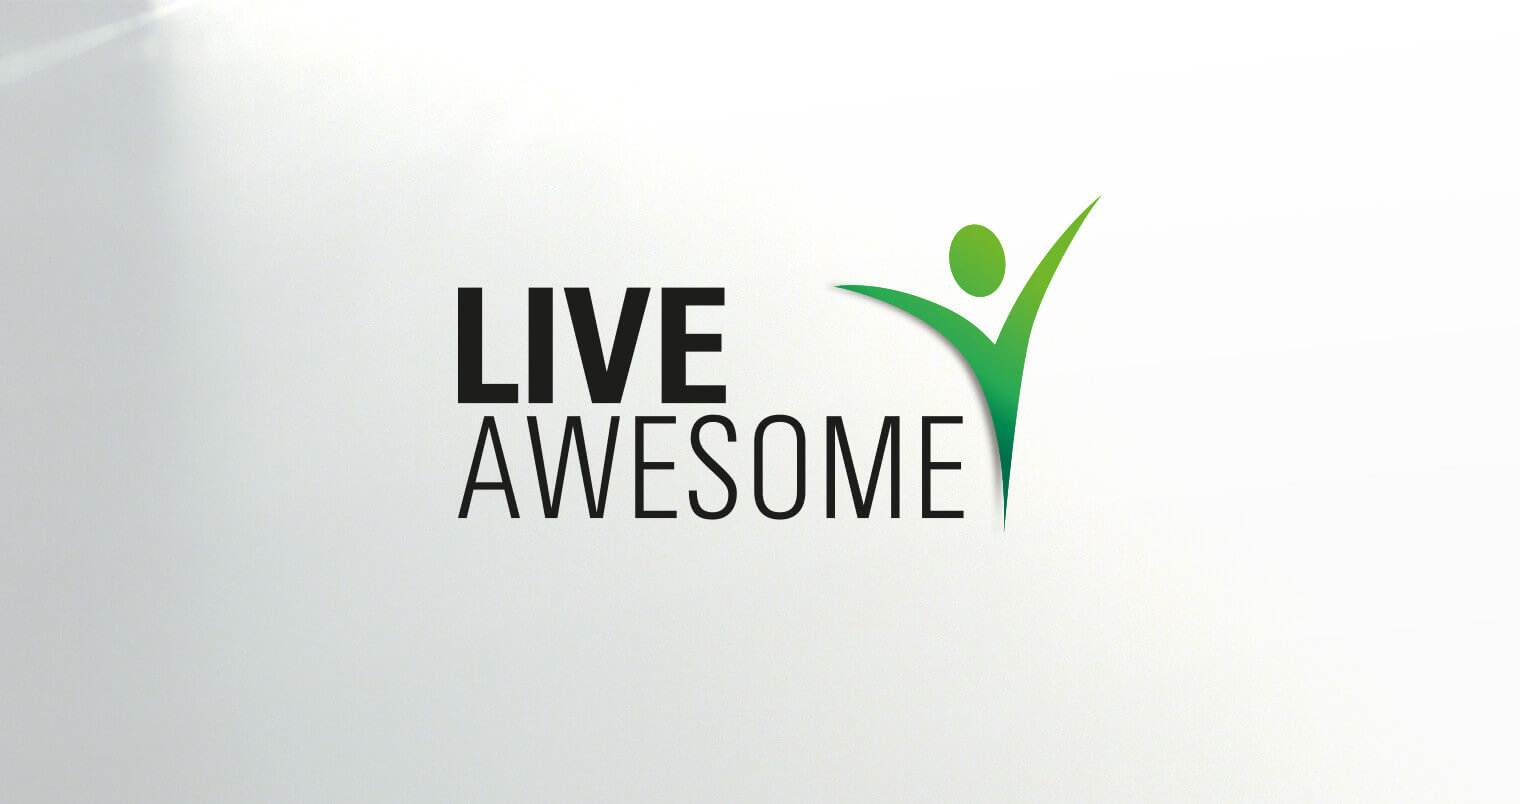 LIVE AWESOME: Logodesign